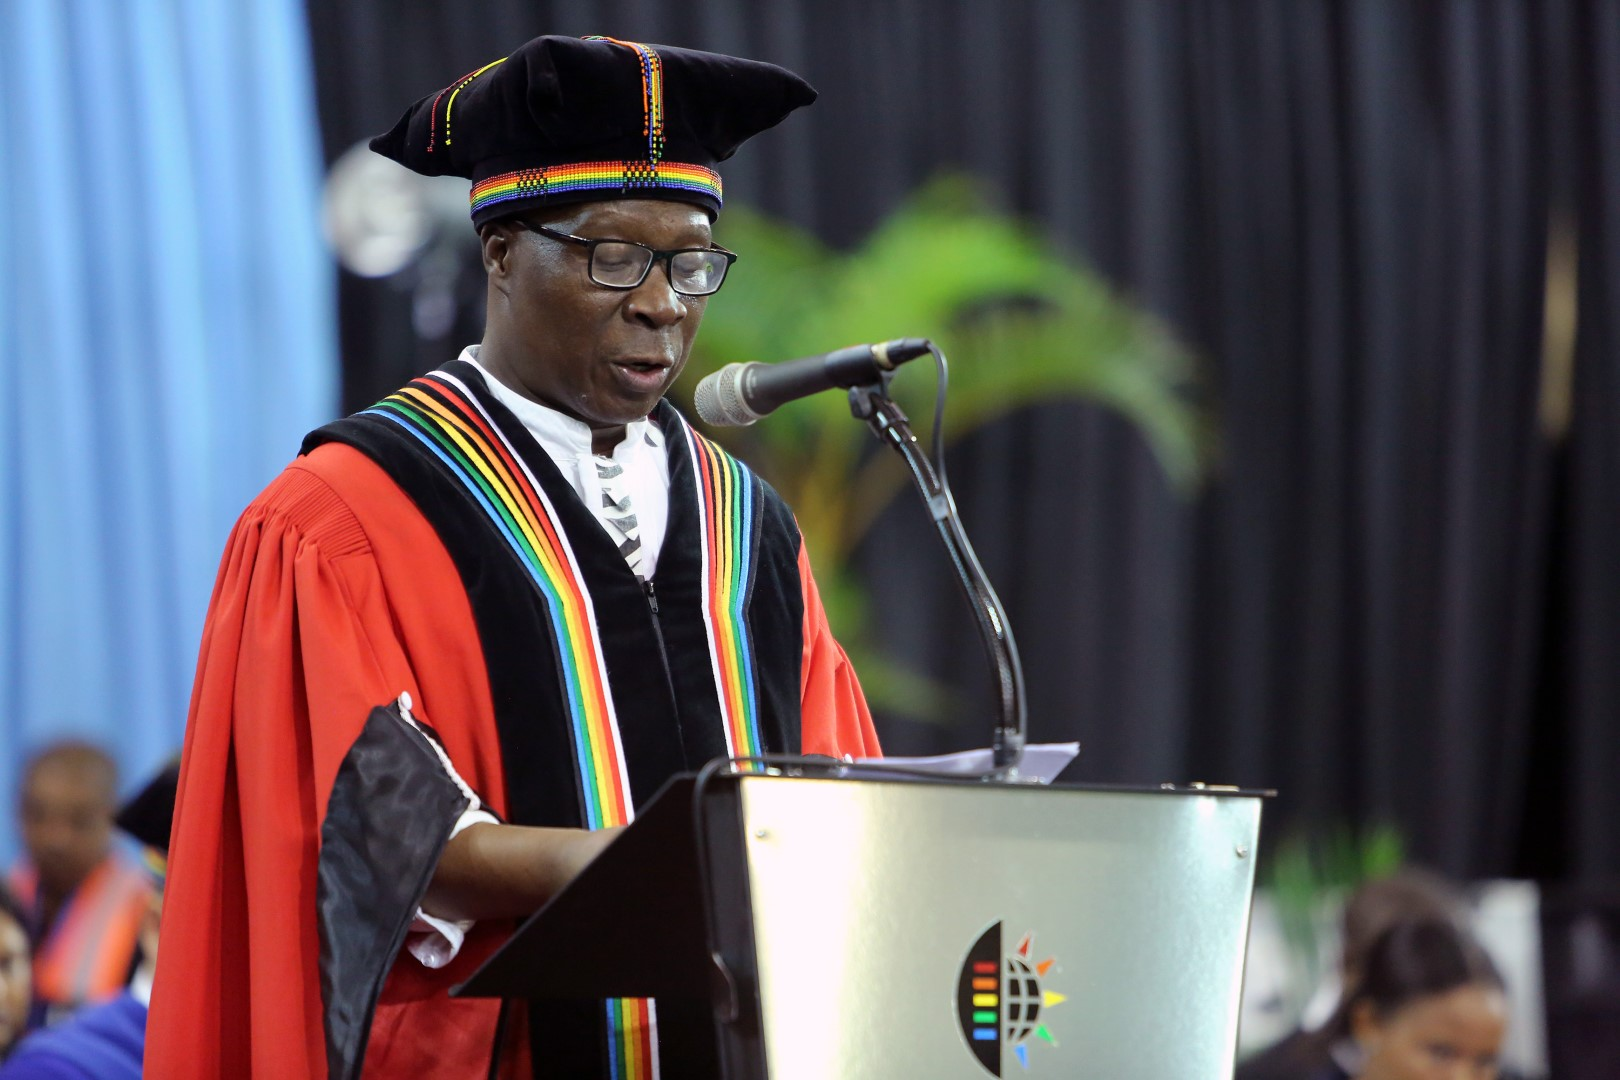 College of Humanities DVC Prof Nhlanhla Mkhize delivers his welcome address